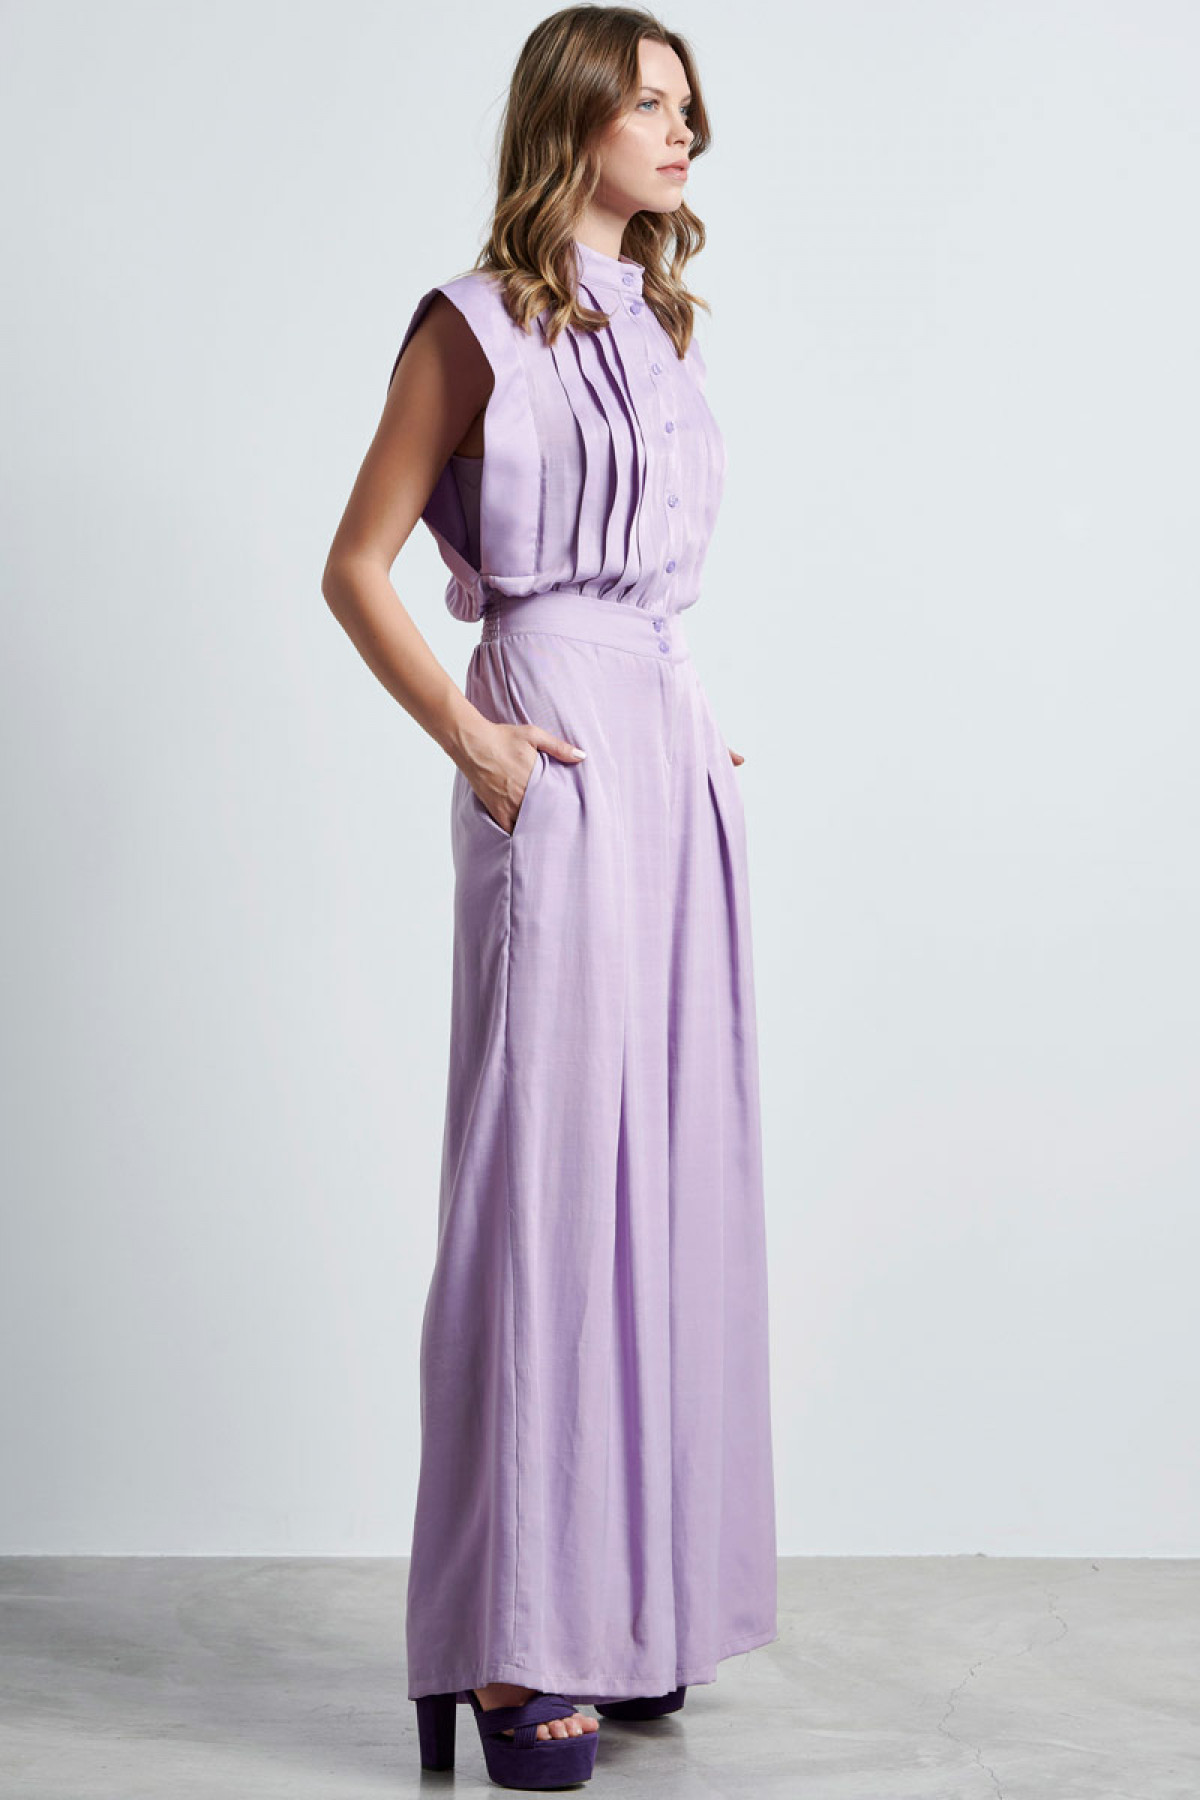 SLEEVELESS JUMPSUIT IN LAVENDER